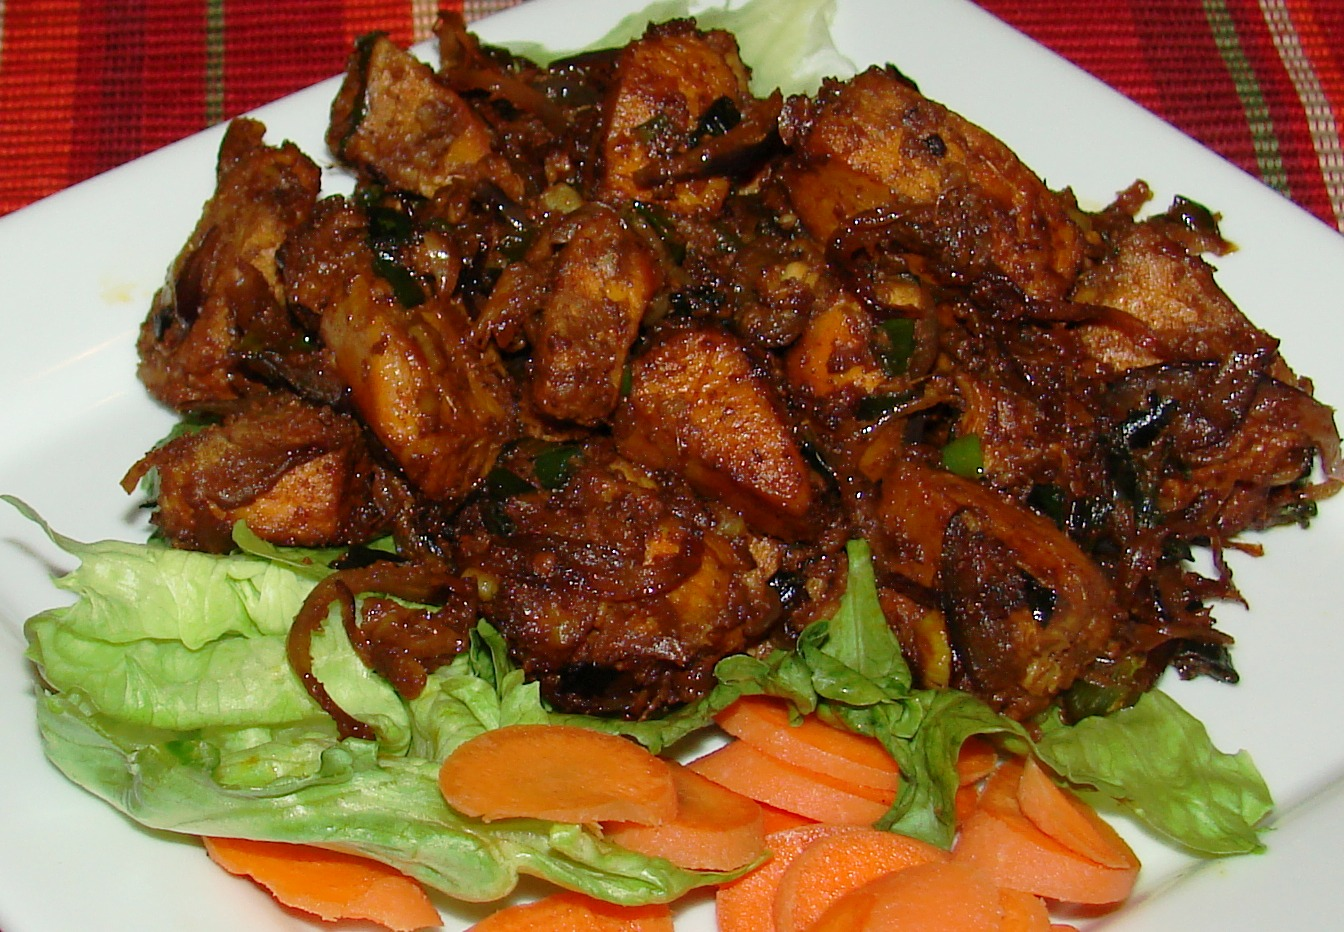 SOUTH INDIAN FOOD VERITIES & PREPARATION: Chicken Roast